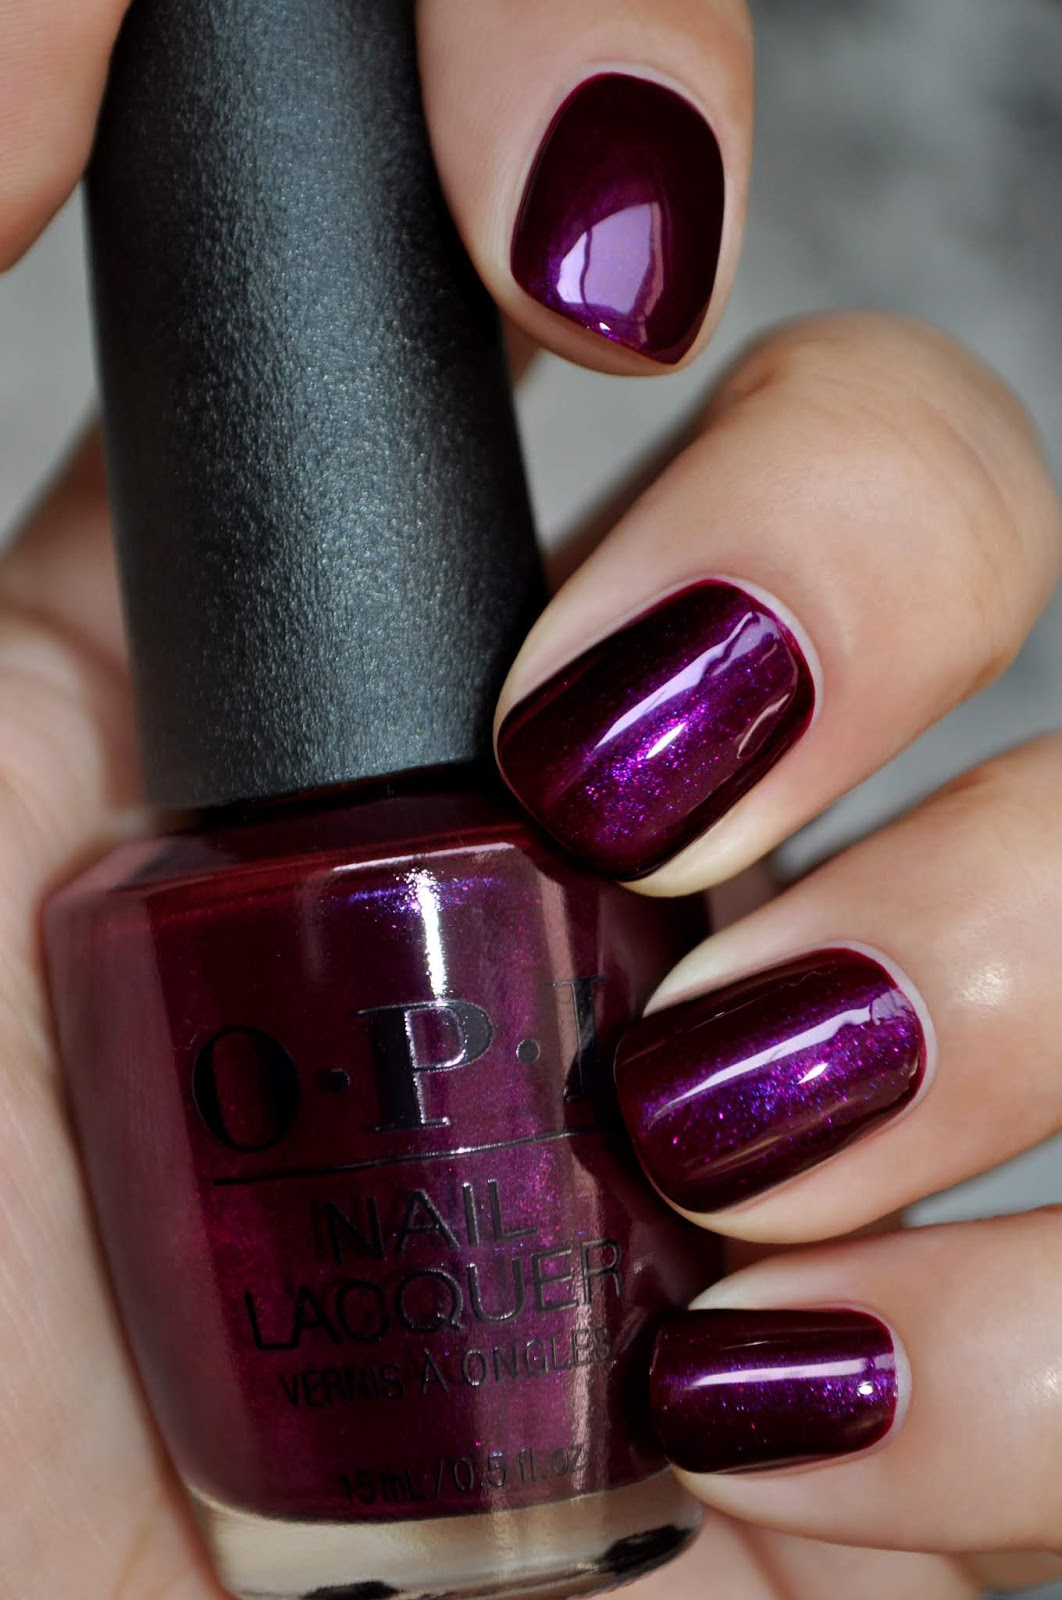 So Lonely In Gorgeous And The Raven Cried Give Me More O P I Nail Lacquer